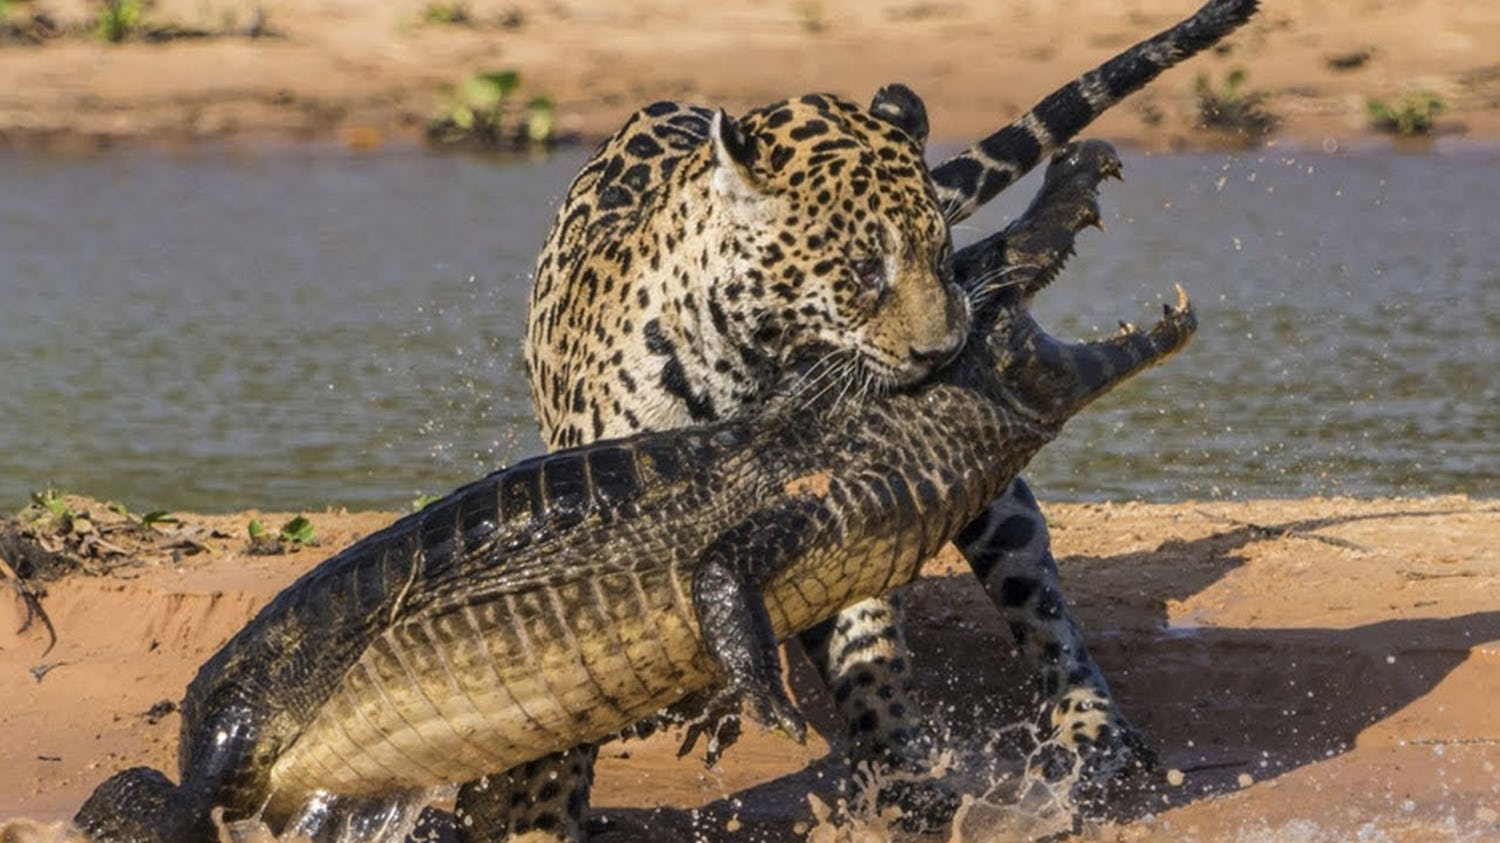 Source Image : www.roaring.earth/jaguar-attacks-crocodile/